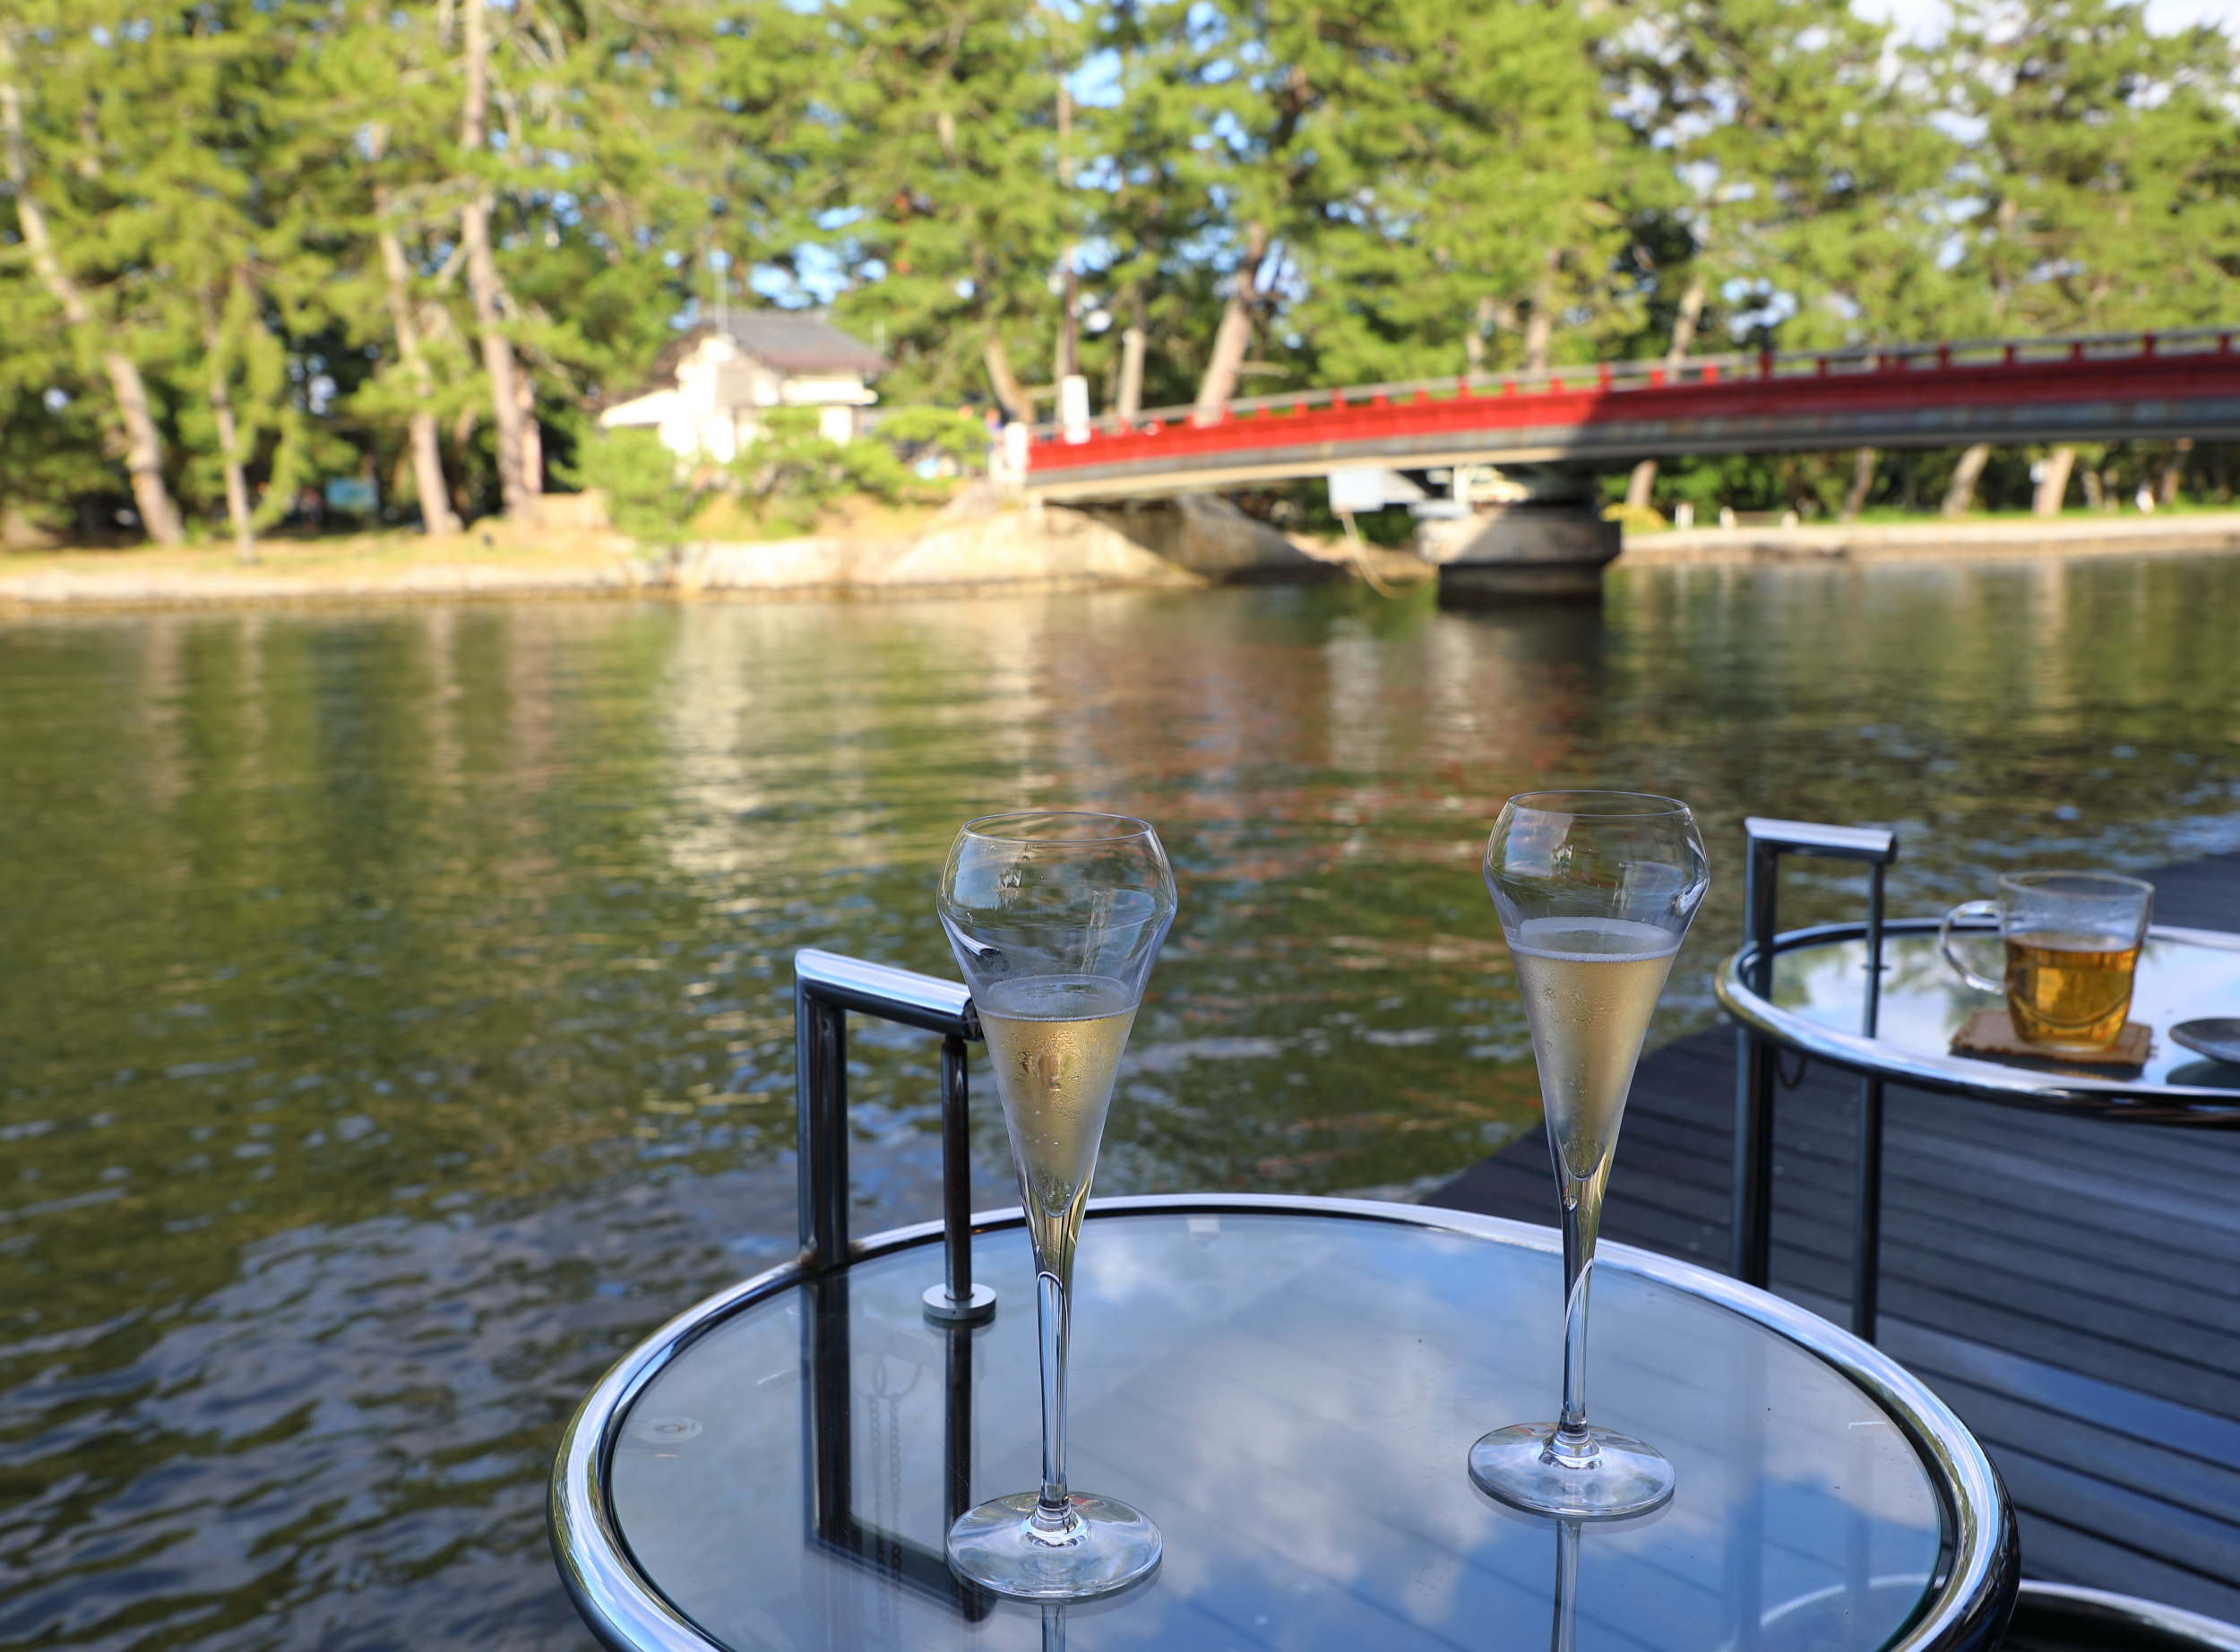 It's easy to while away an afternoon on the deck of Cafe du Pin. The red bridge across the canal connects the village of Amanohashidate to its famous pine-covered sandbar.